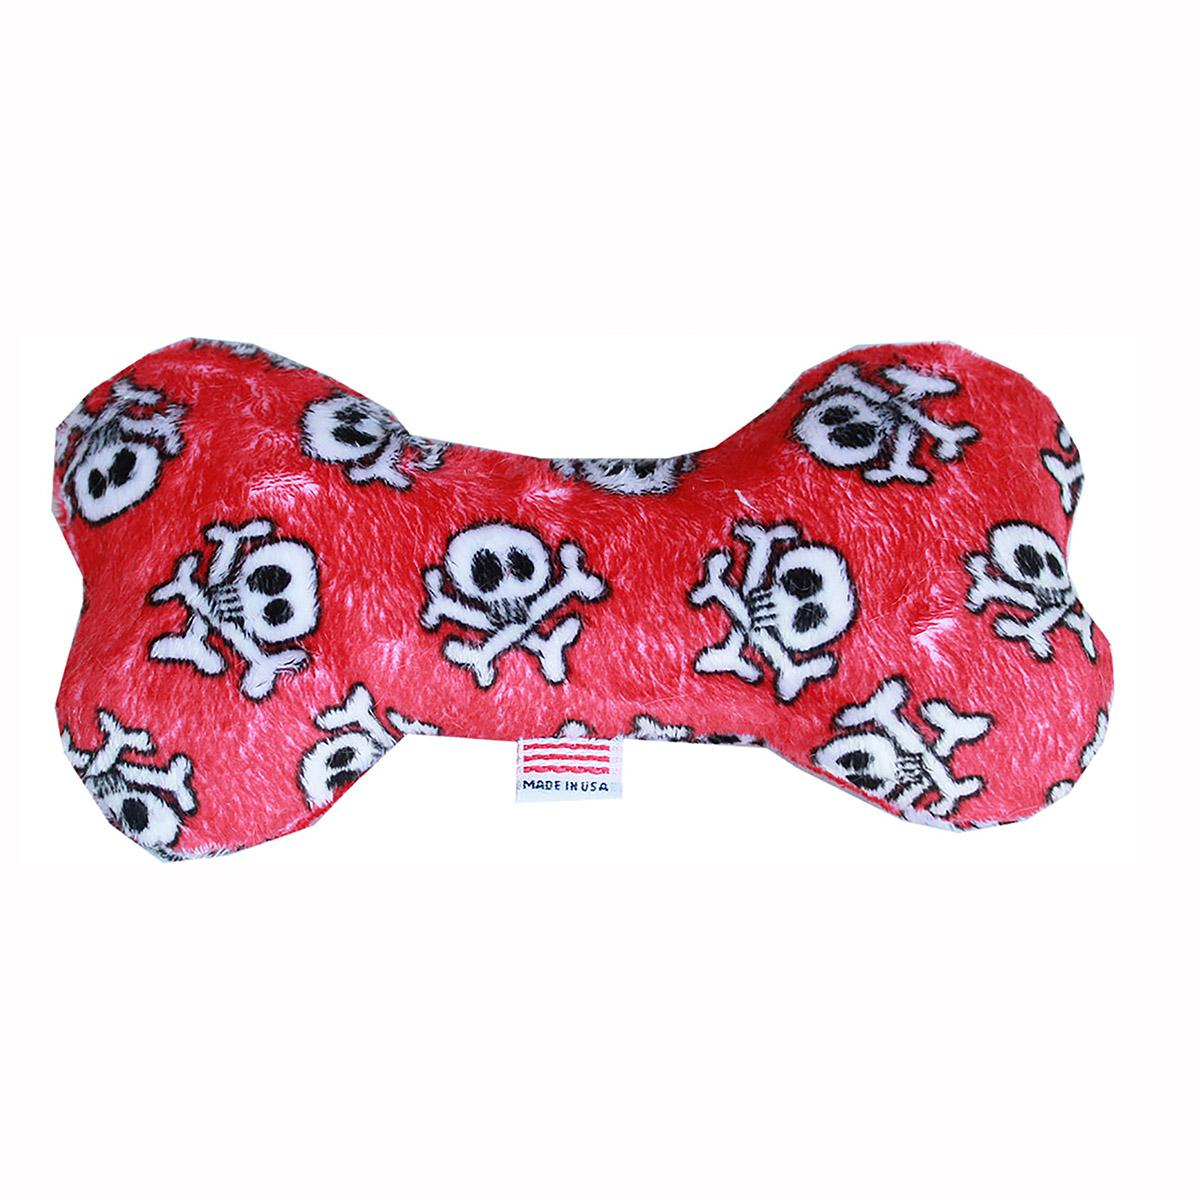 Plush Bone Dog Toy - Red Skull